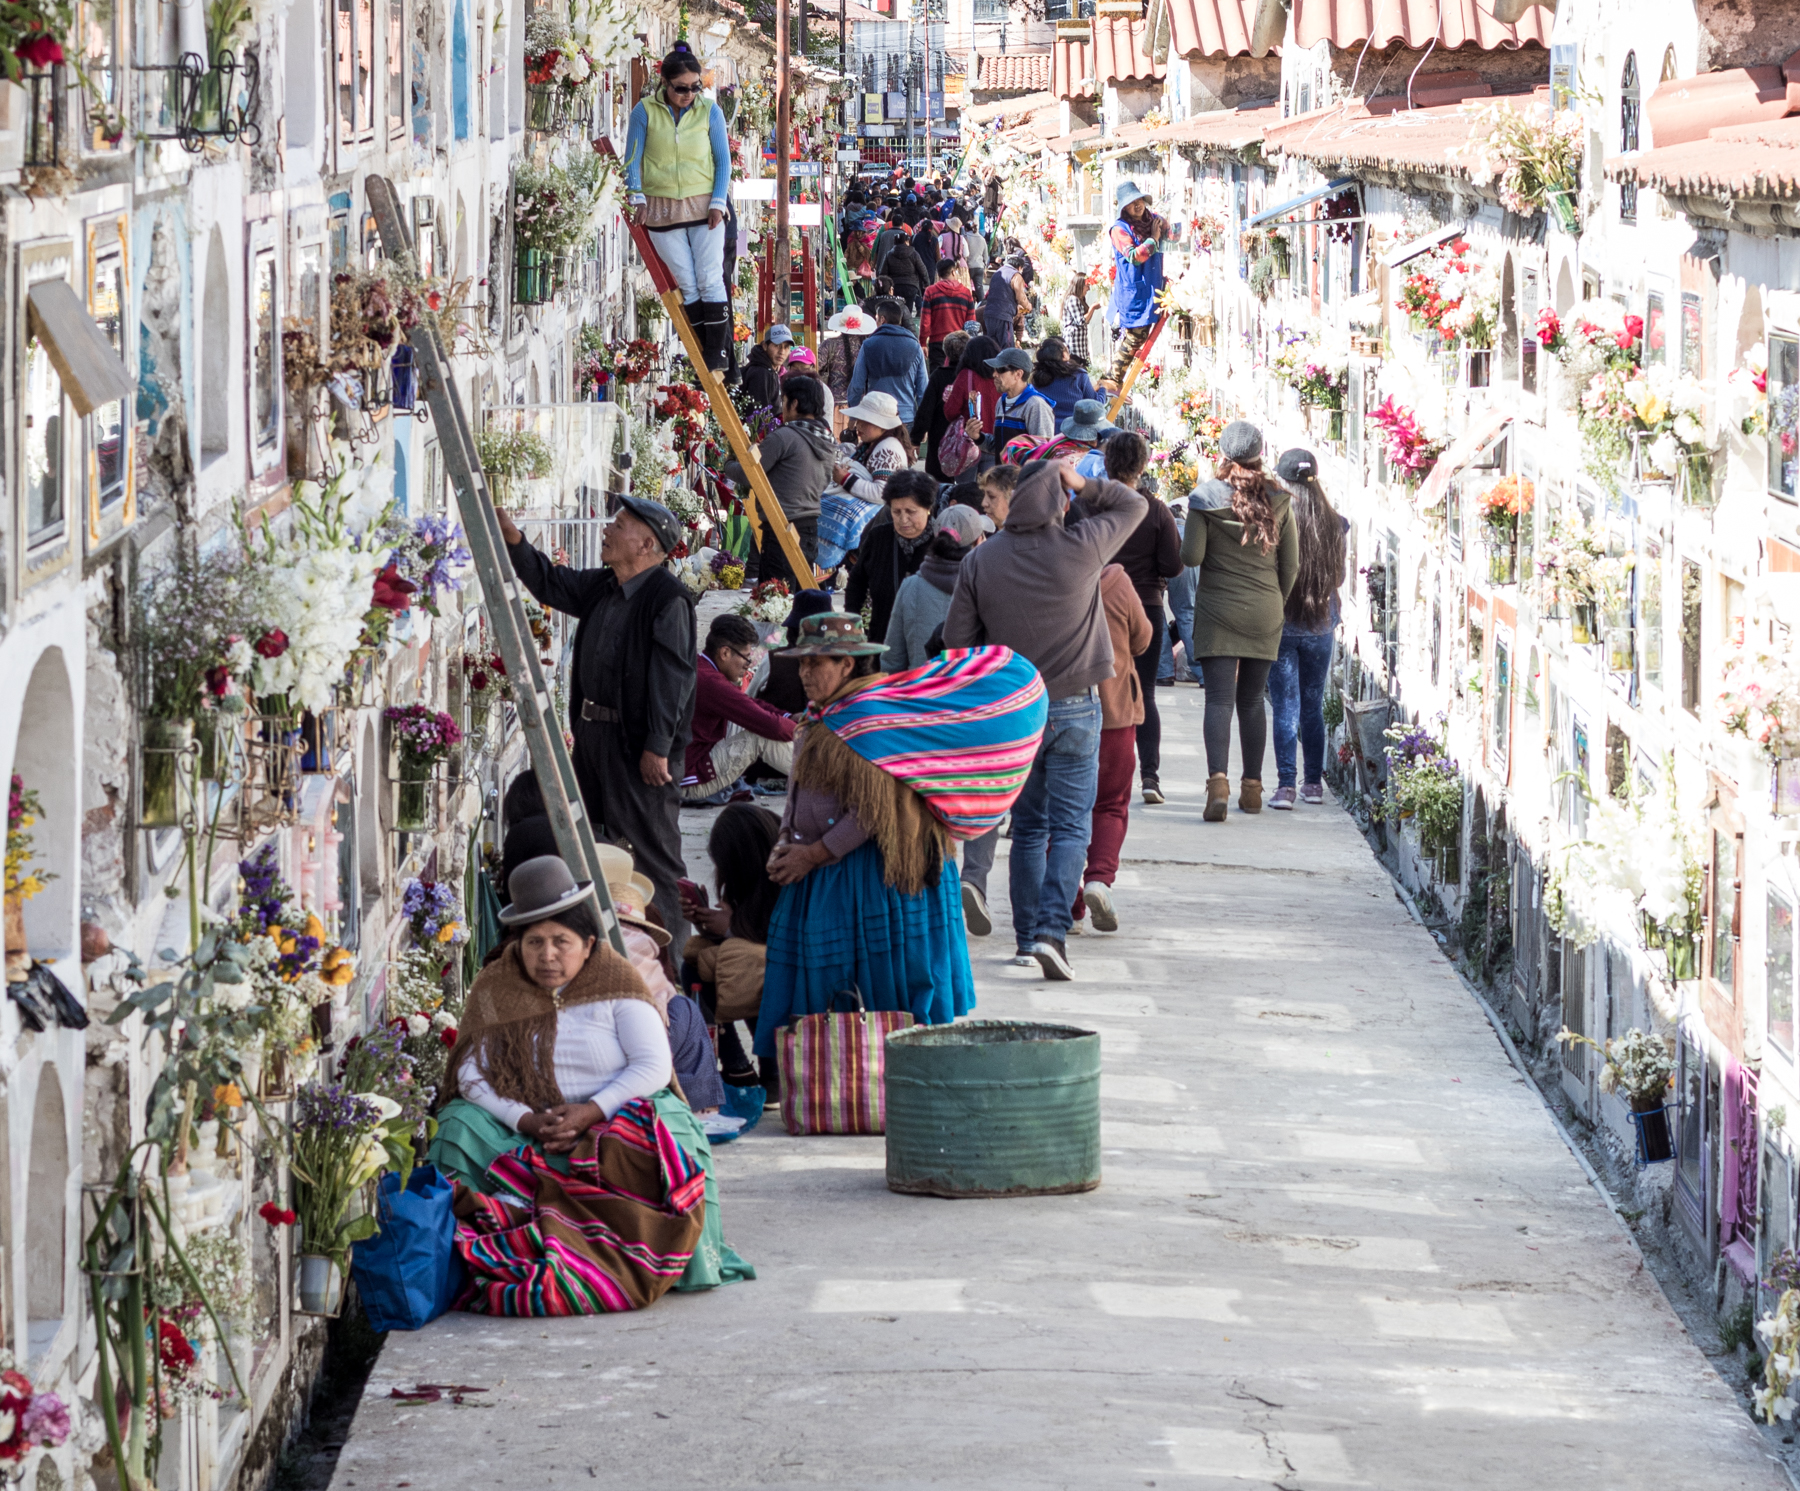 The large cemetery in La Paz in November 2019. Due to a curfew, it must have been empty for weeks.